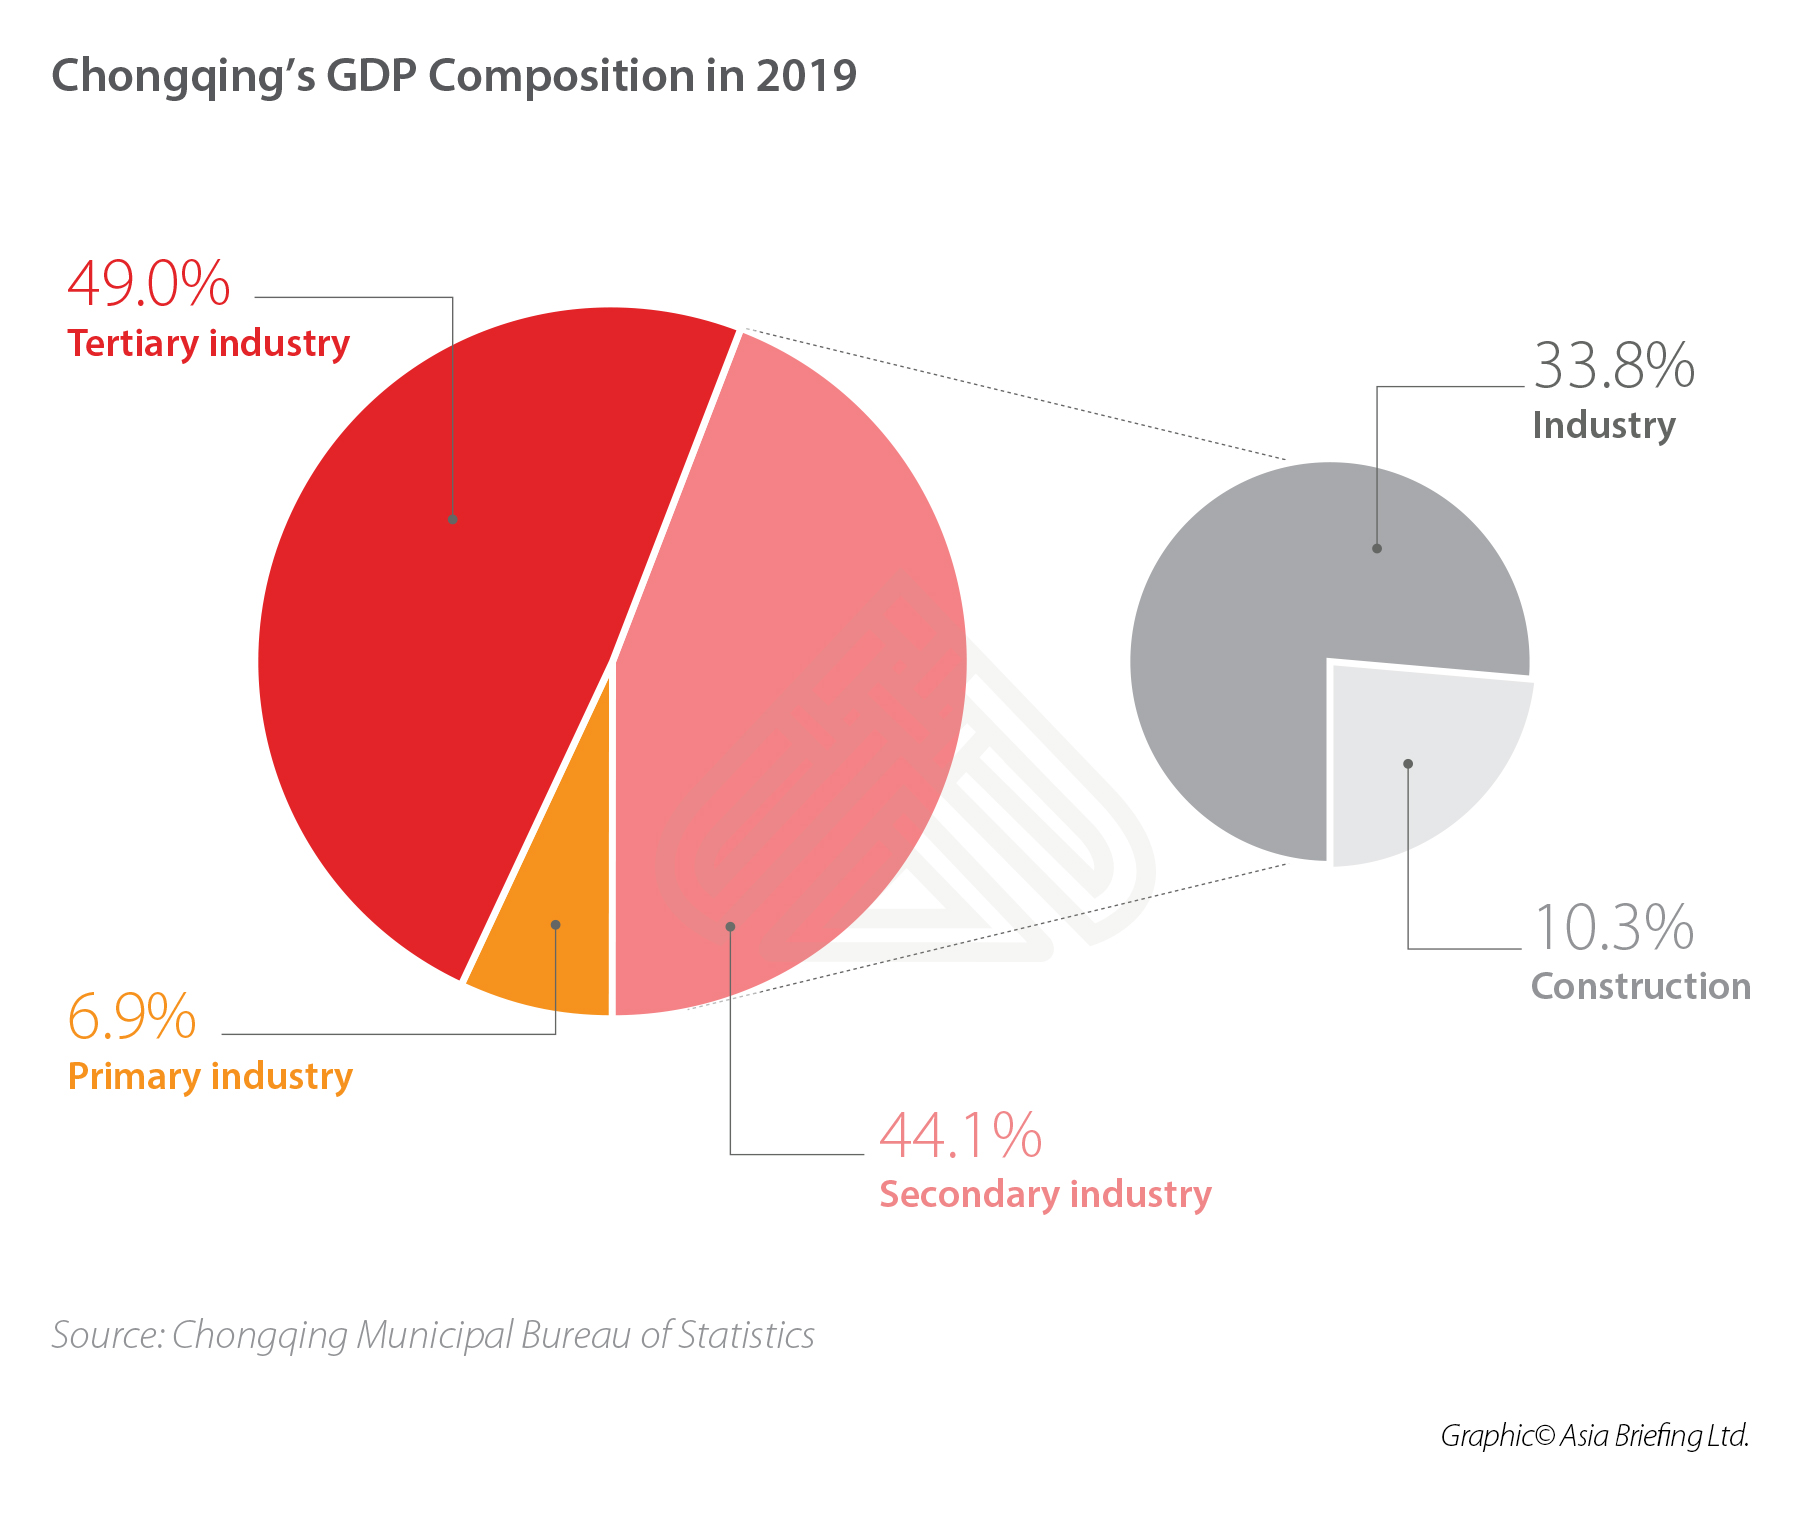 Chongqing GDP composition